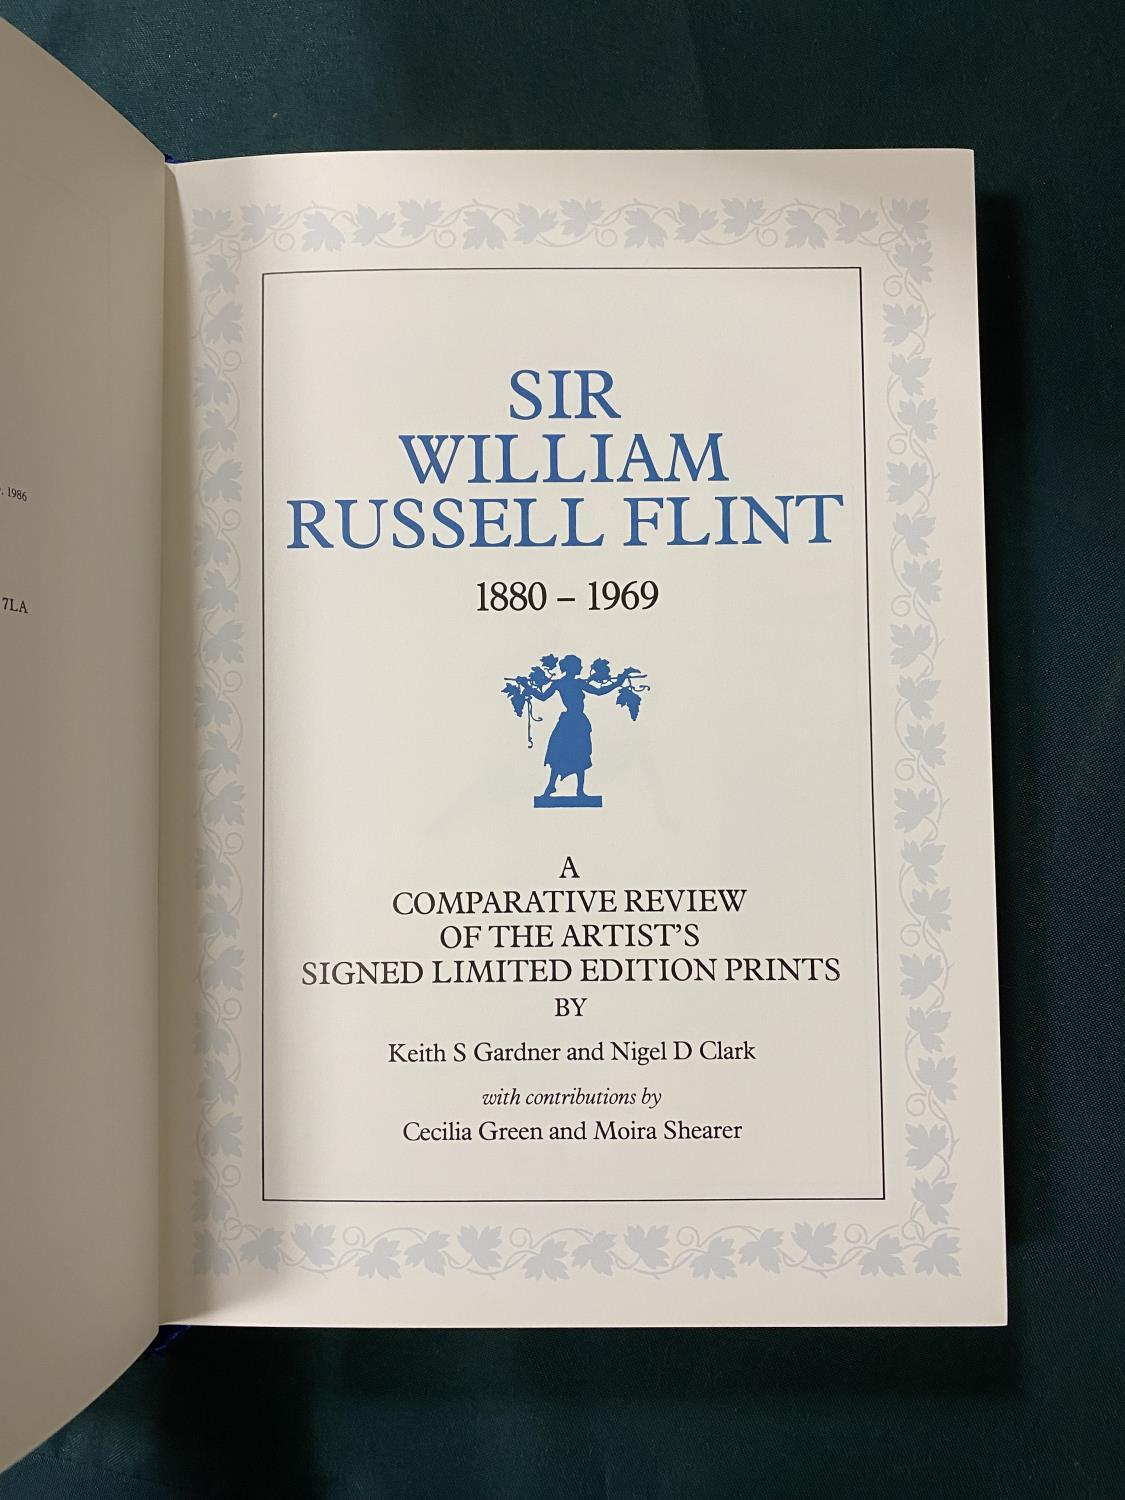 Gardner, Keith S. Sir William Russell Flint 1880-1969. A Comparative Review of the Artist's Signed - Image 4 of 5